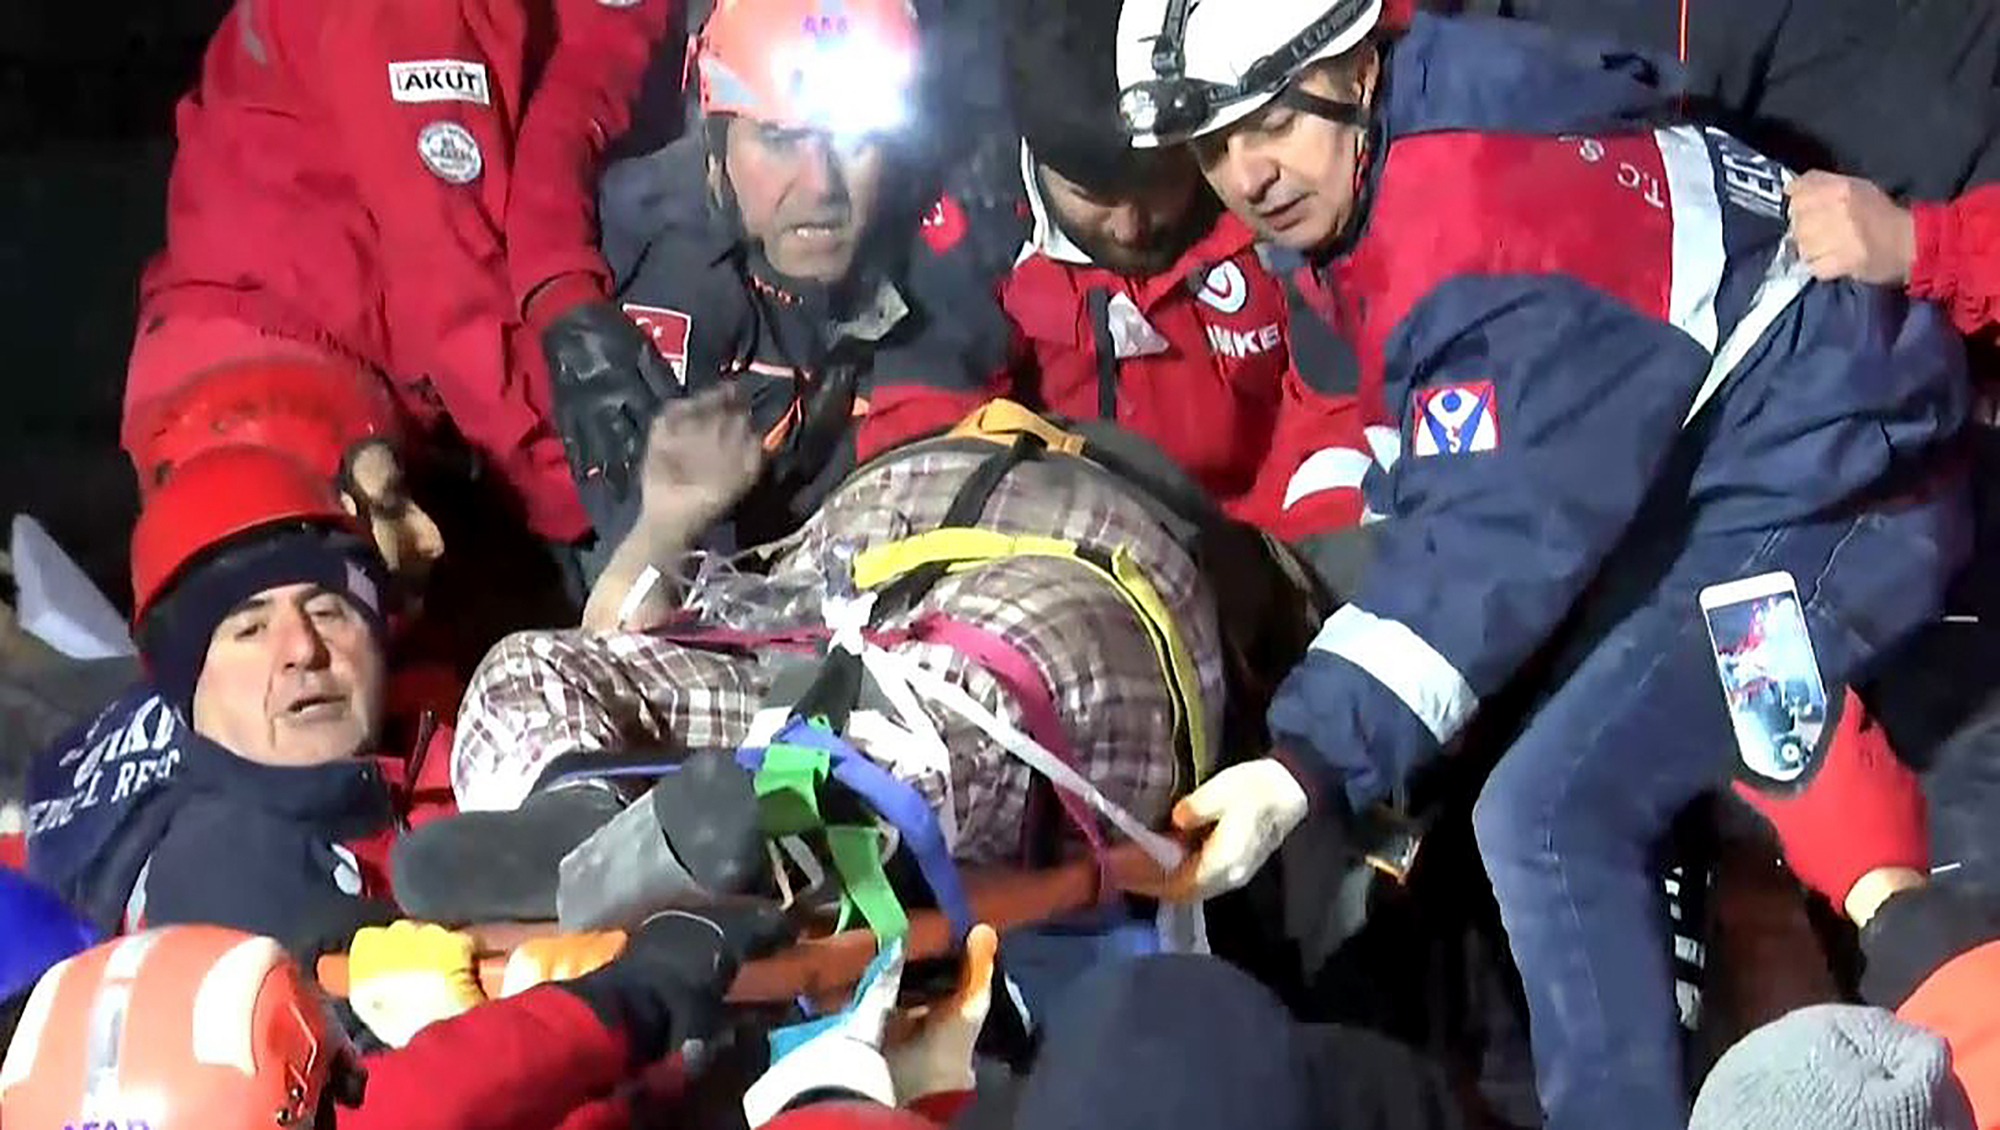 Rescue workers carry a wounded person after they rescued him from the debris of a collapsed building following a strong earthquake in Elazig in the eastern Turkey, Saturday, Jan. 25, 2020. The earthquake rocked eastern Turkey on Friday, causing some buildings to collapse and killing scores of people, Turkish officials said. (IHA via AP)